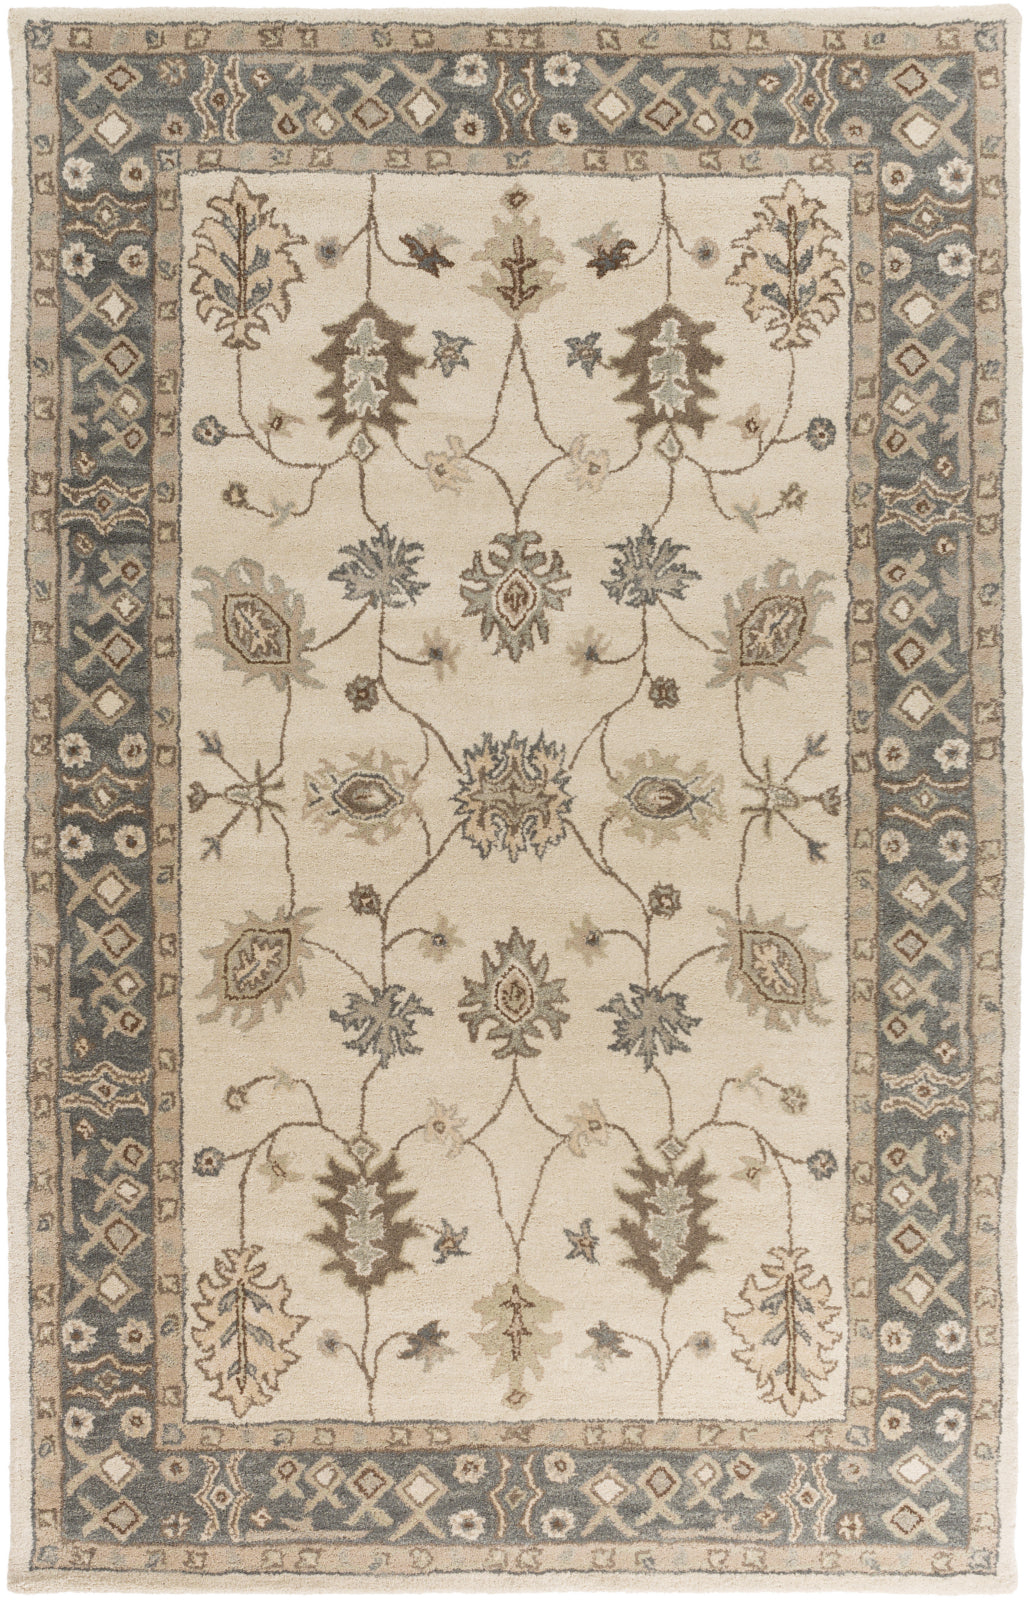 Artistic Weavers Middleton Willow AWHR2050 Area Rug main image